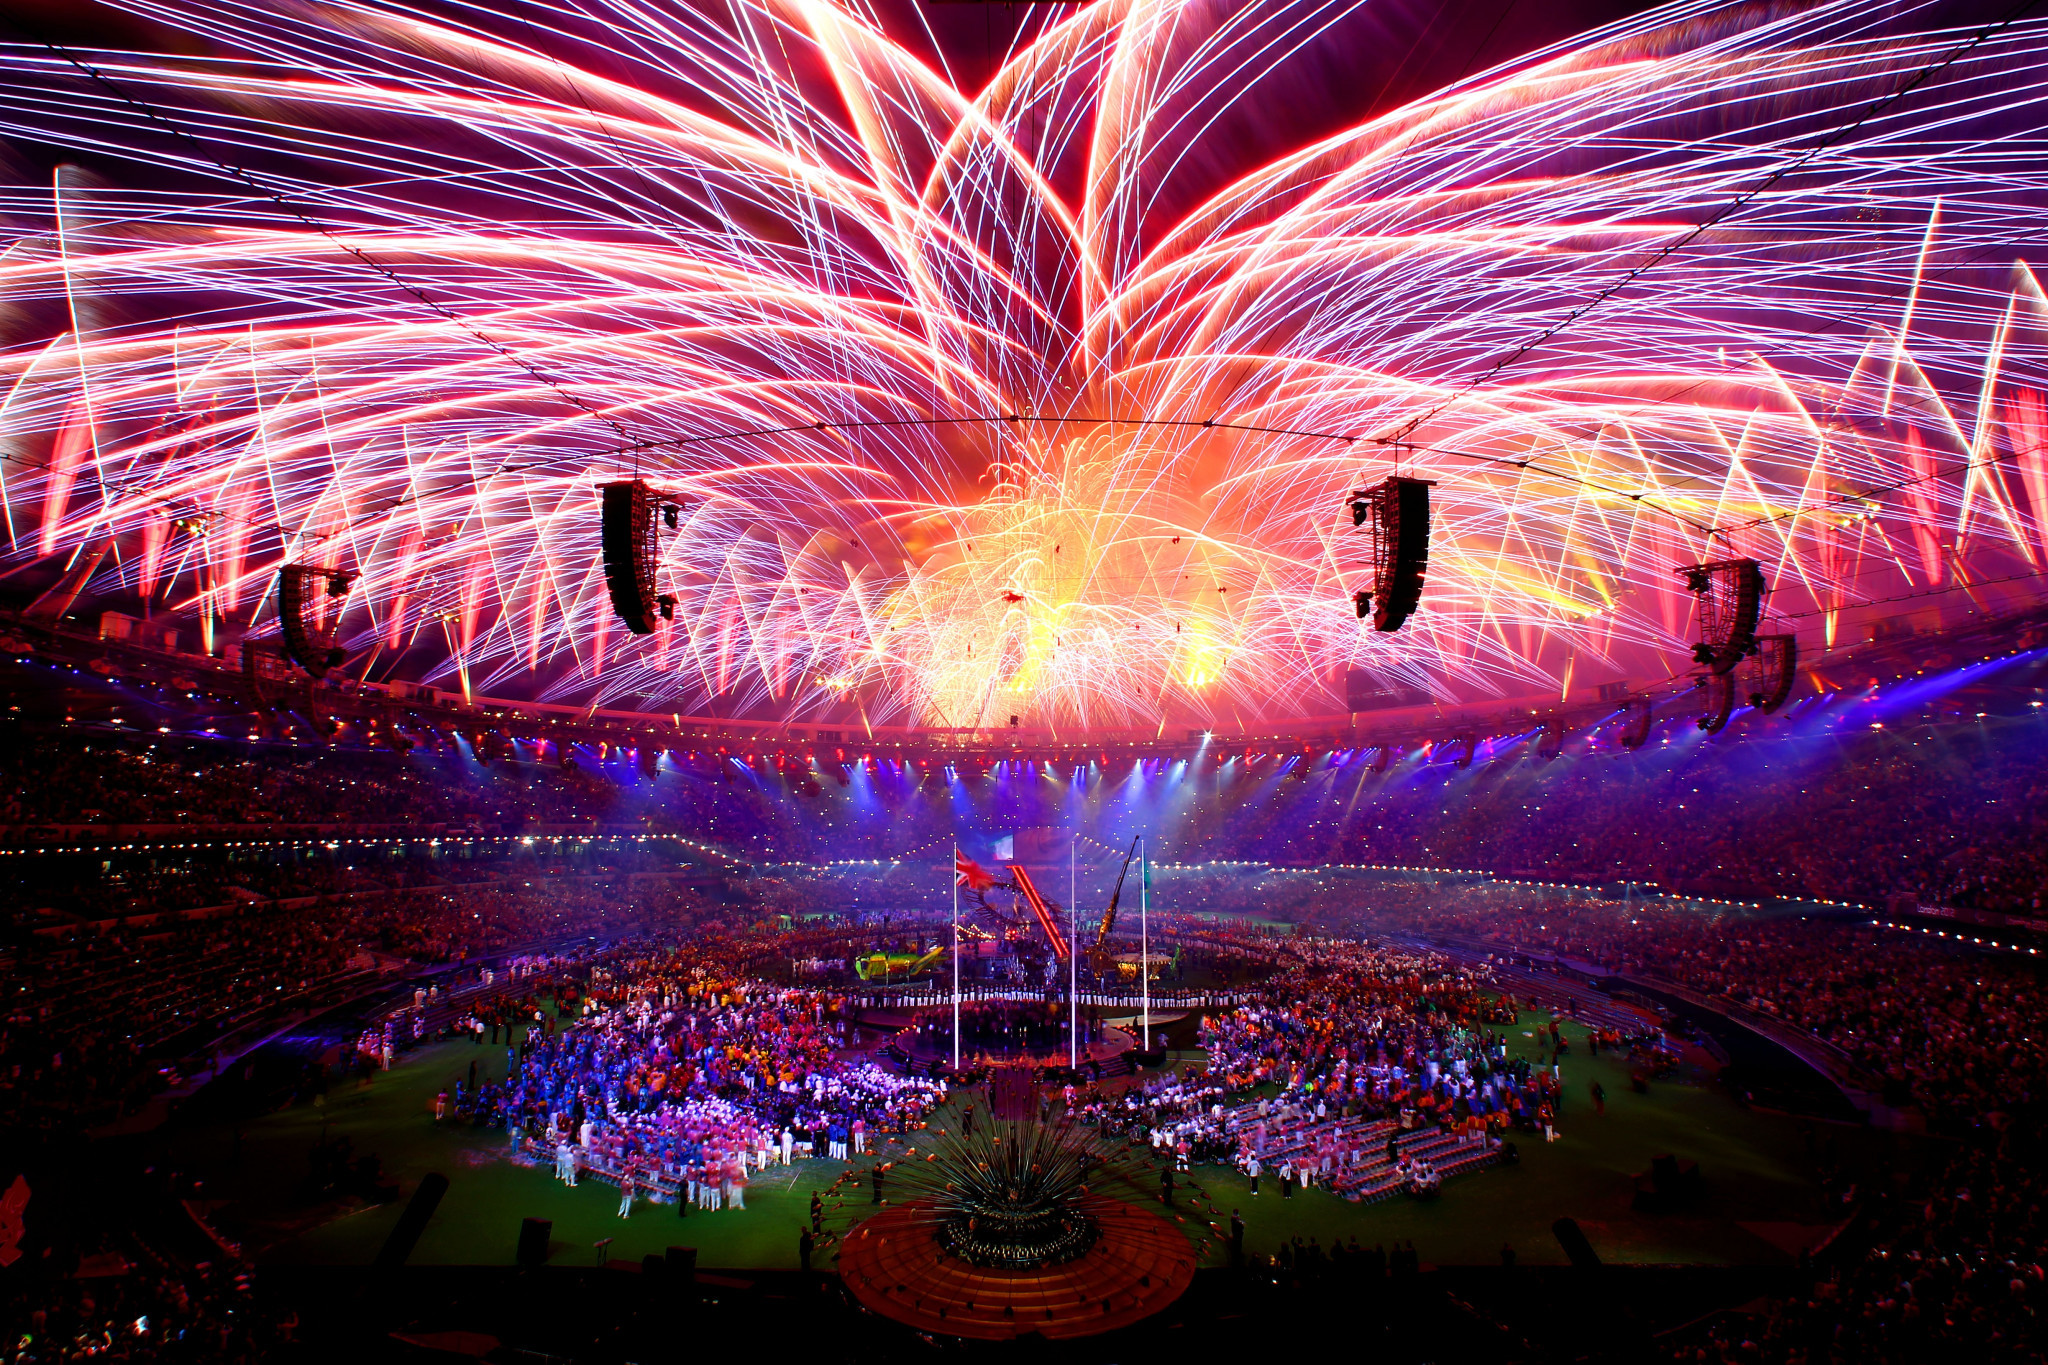 Fireworks light up the stadium during the closing ceremony on day 11 of the London 2012 Paralympic Games at Olympic Stadium on September 9, 2012 in London, England ©Getty Images